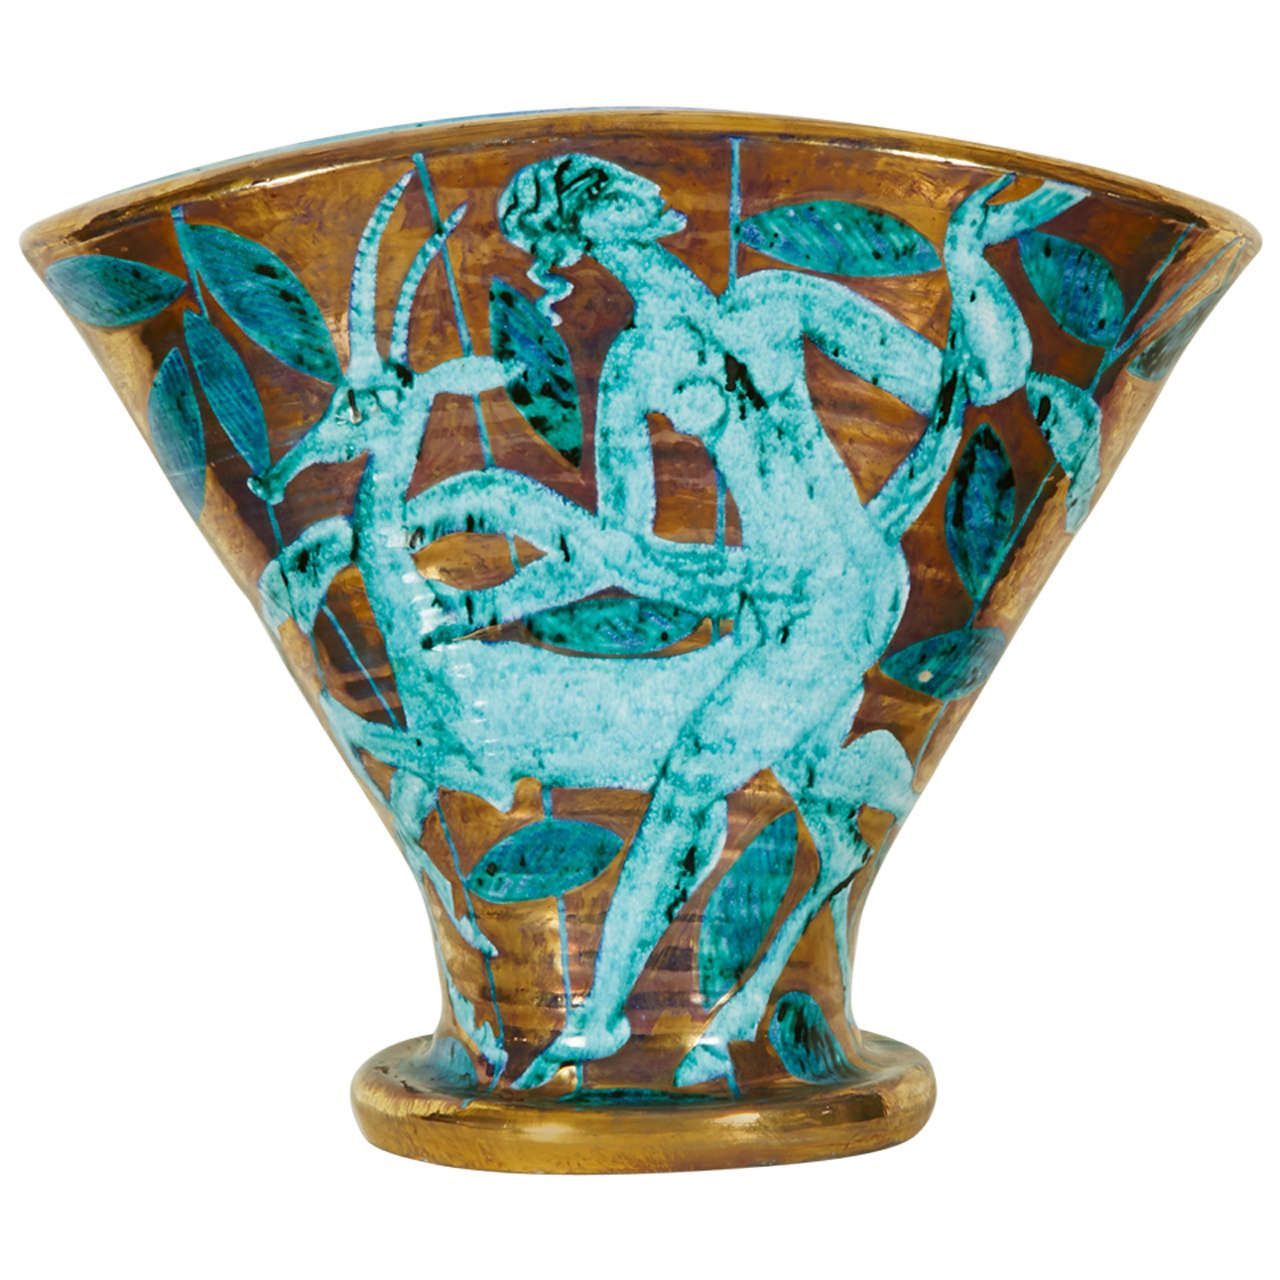 Large art dco vase by edouard cazaux circa 1935 pottery large art dco vase by edouard cazaux circa 1935 floridaeventfo Image collections